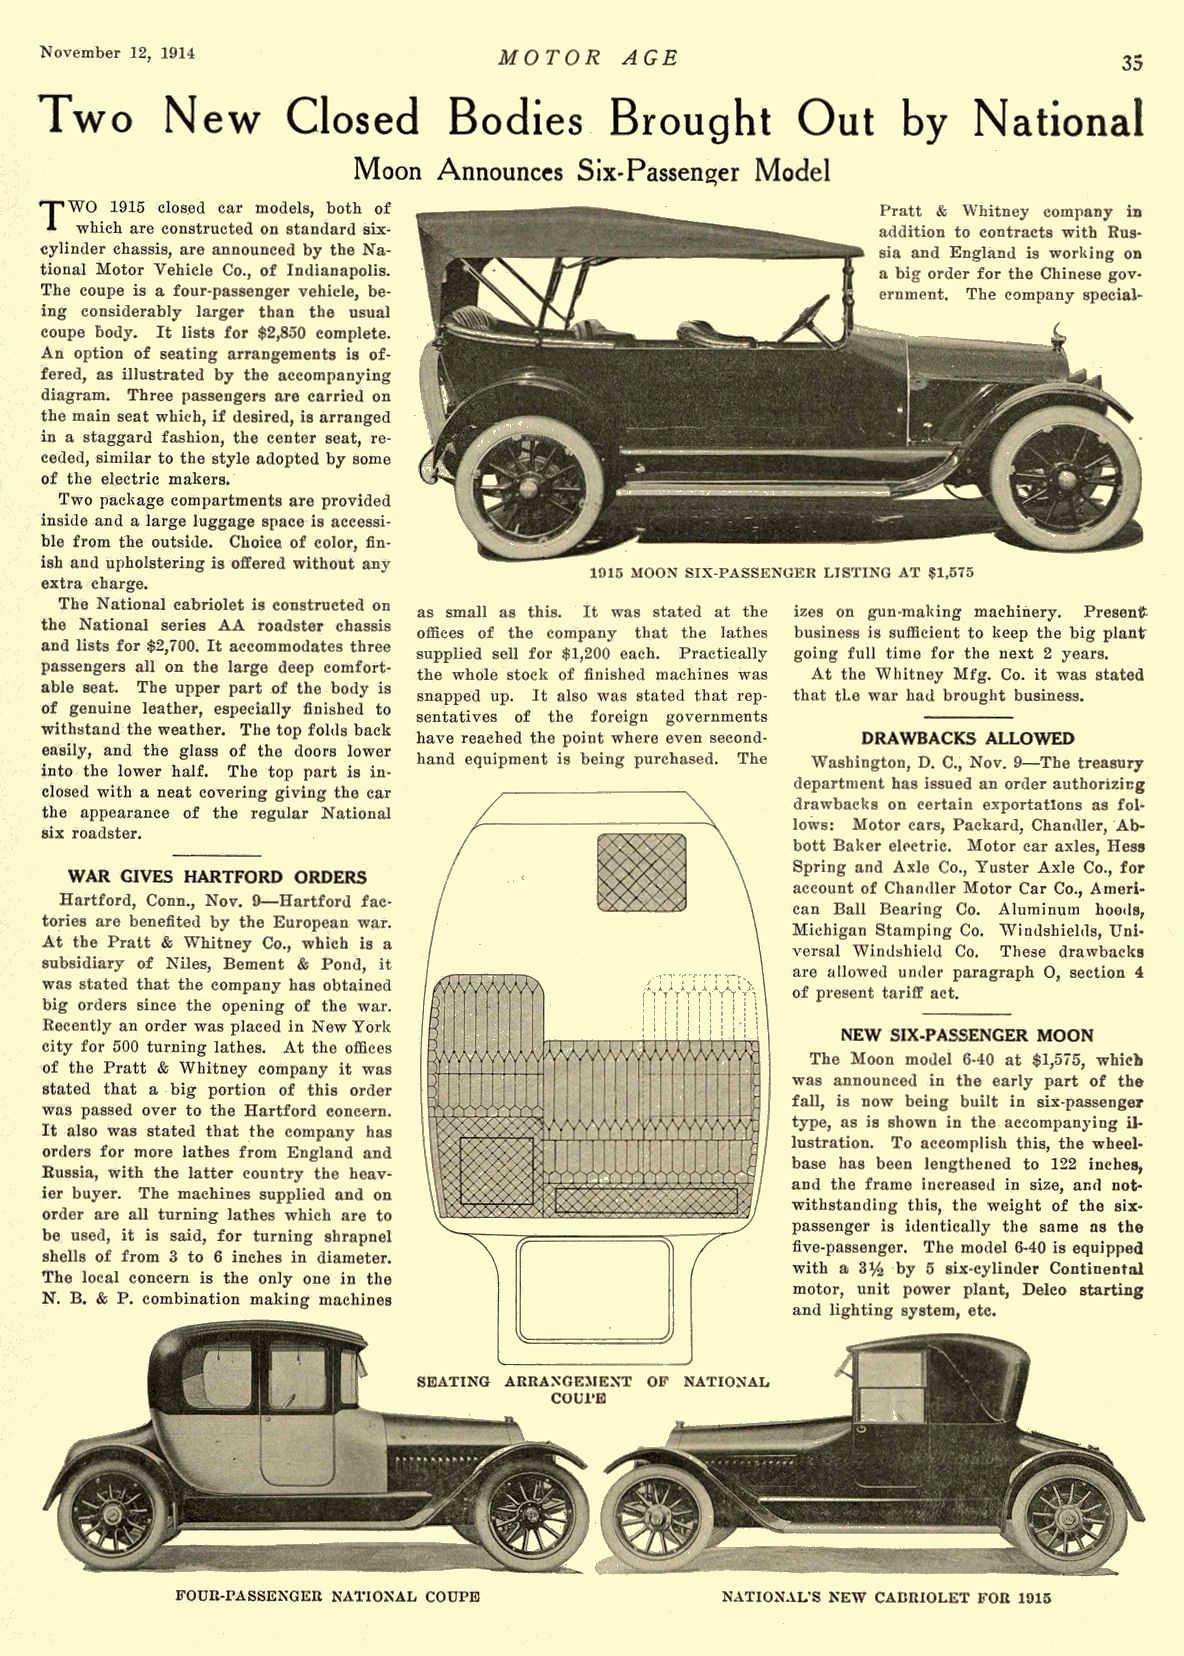 1914 11 12 1915 NATIONAL Article Two New Closed Bod1ies Brought Out by National National Motor Vehicle Co. Indianapolis, IND MOTOR AGE November 12, 1914 8.5″x12″ page 35